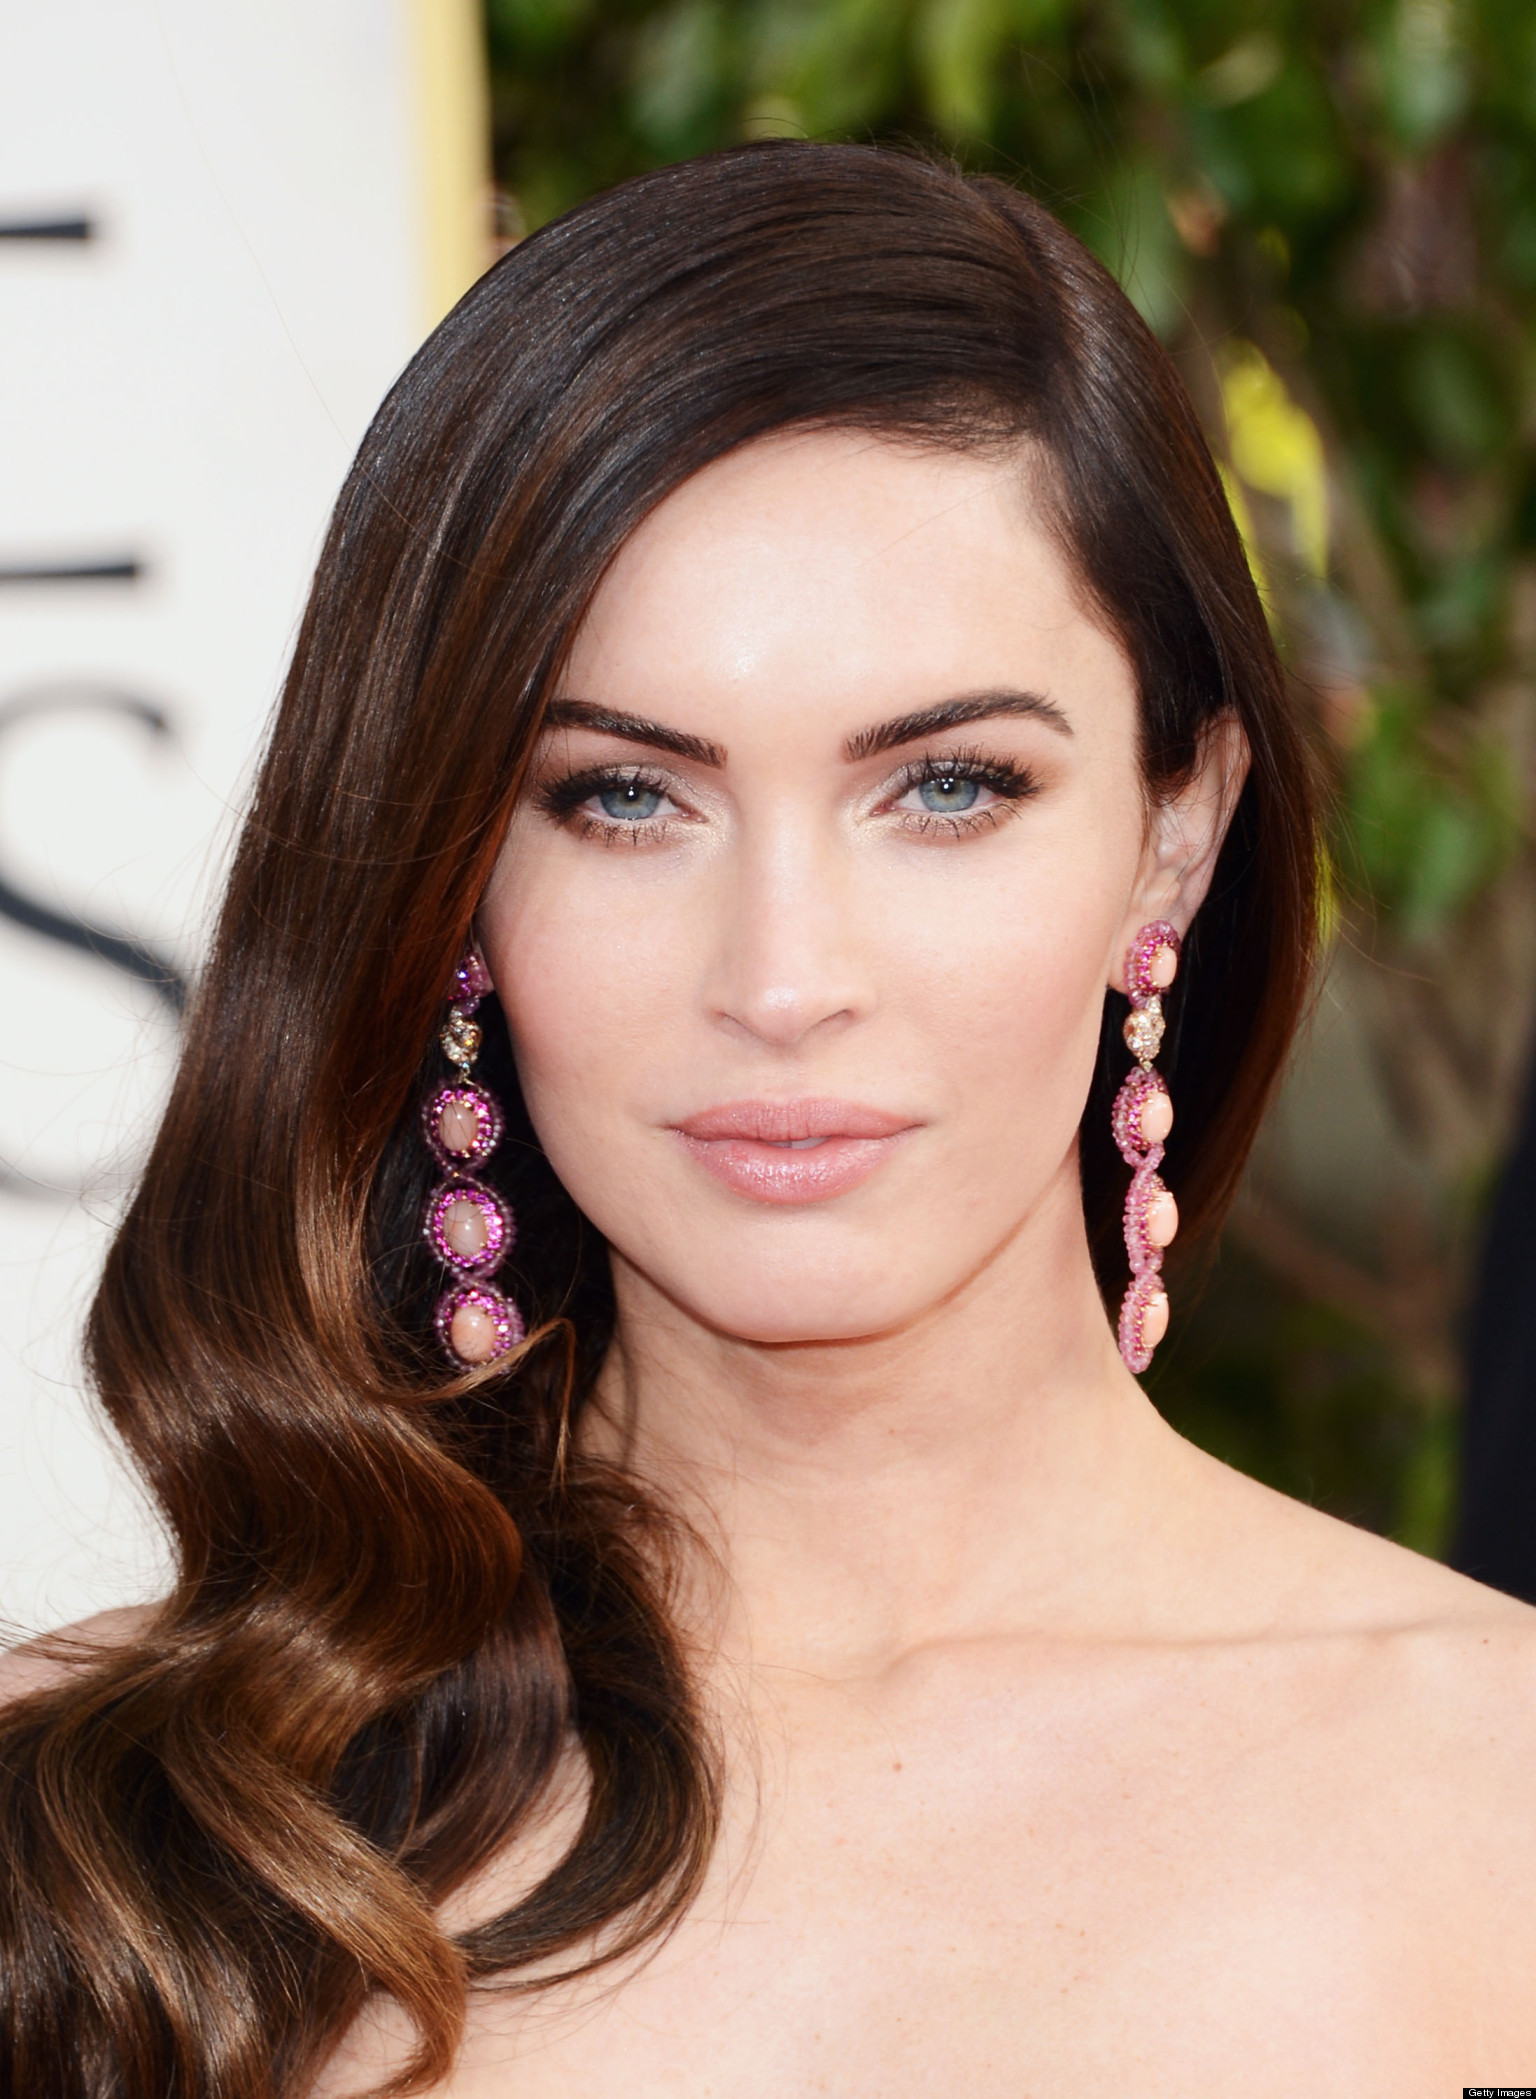 Join. Megan fox hair